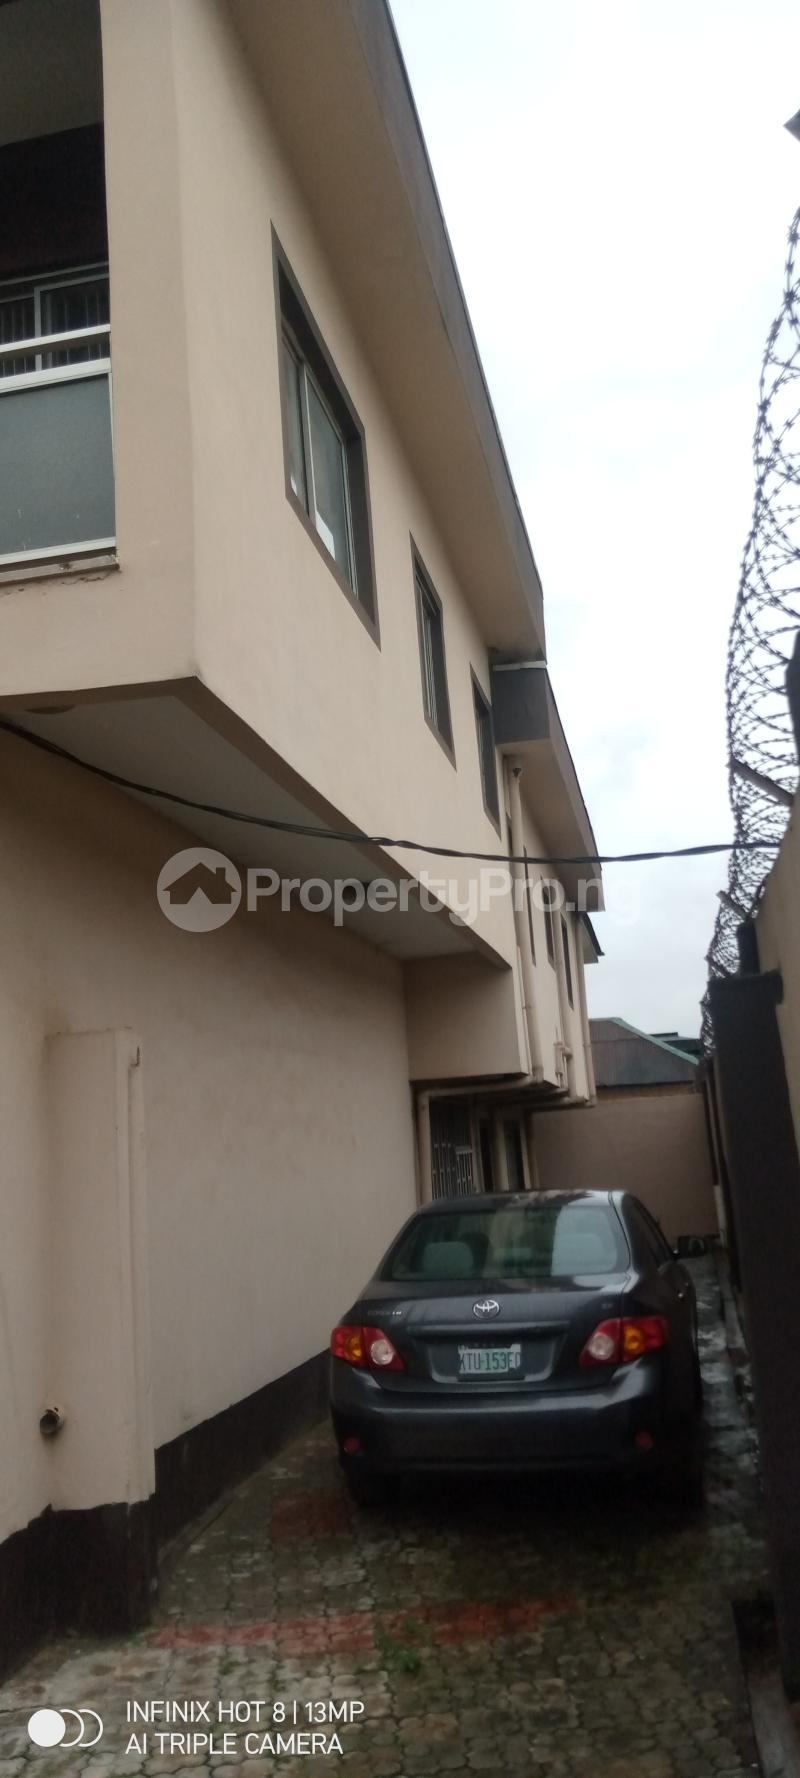 5 bedroom Detached Duplex House for sale Ago palace way Isolo Lagos - 4